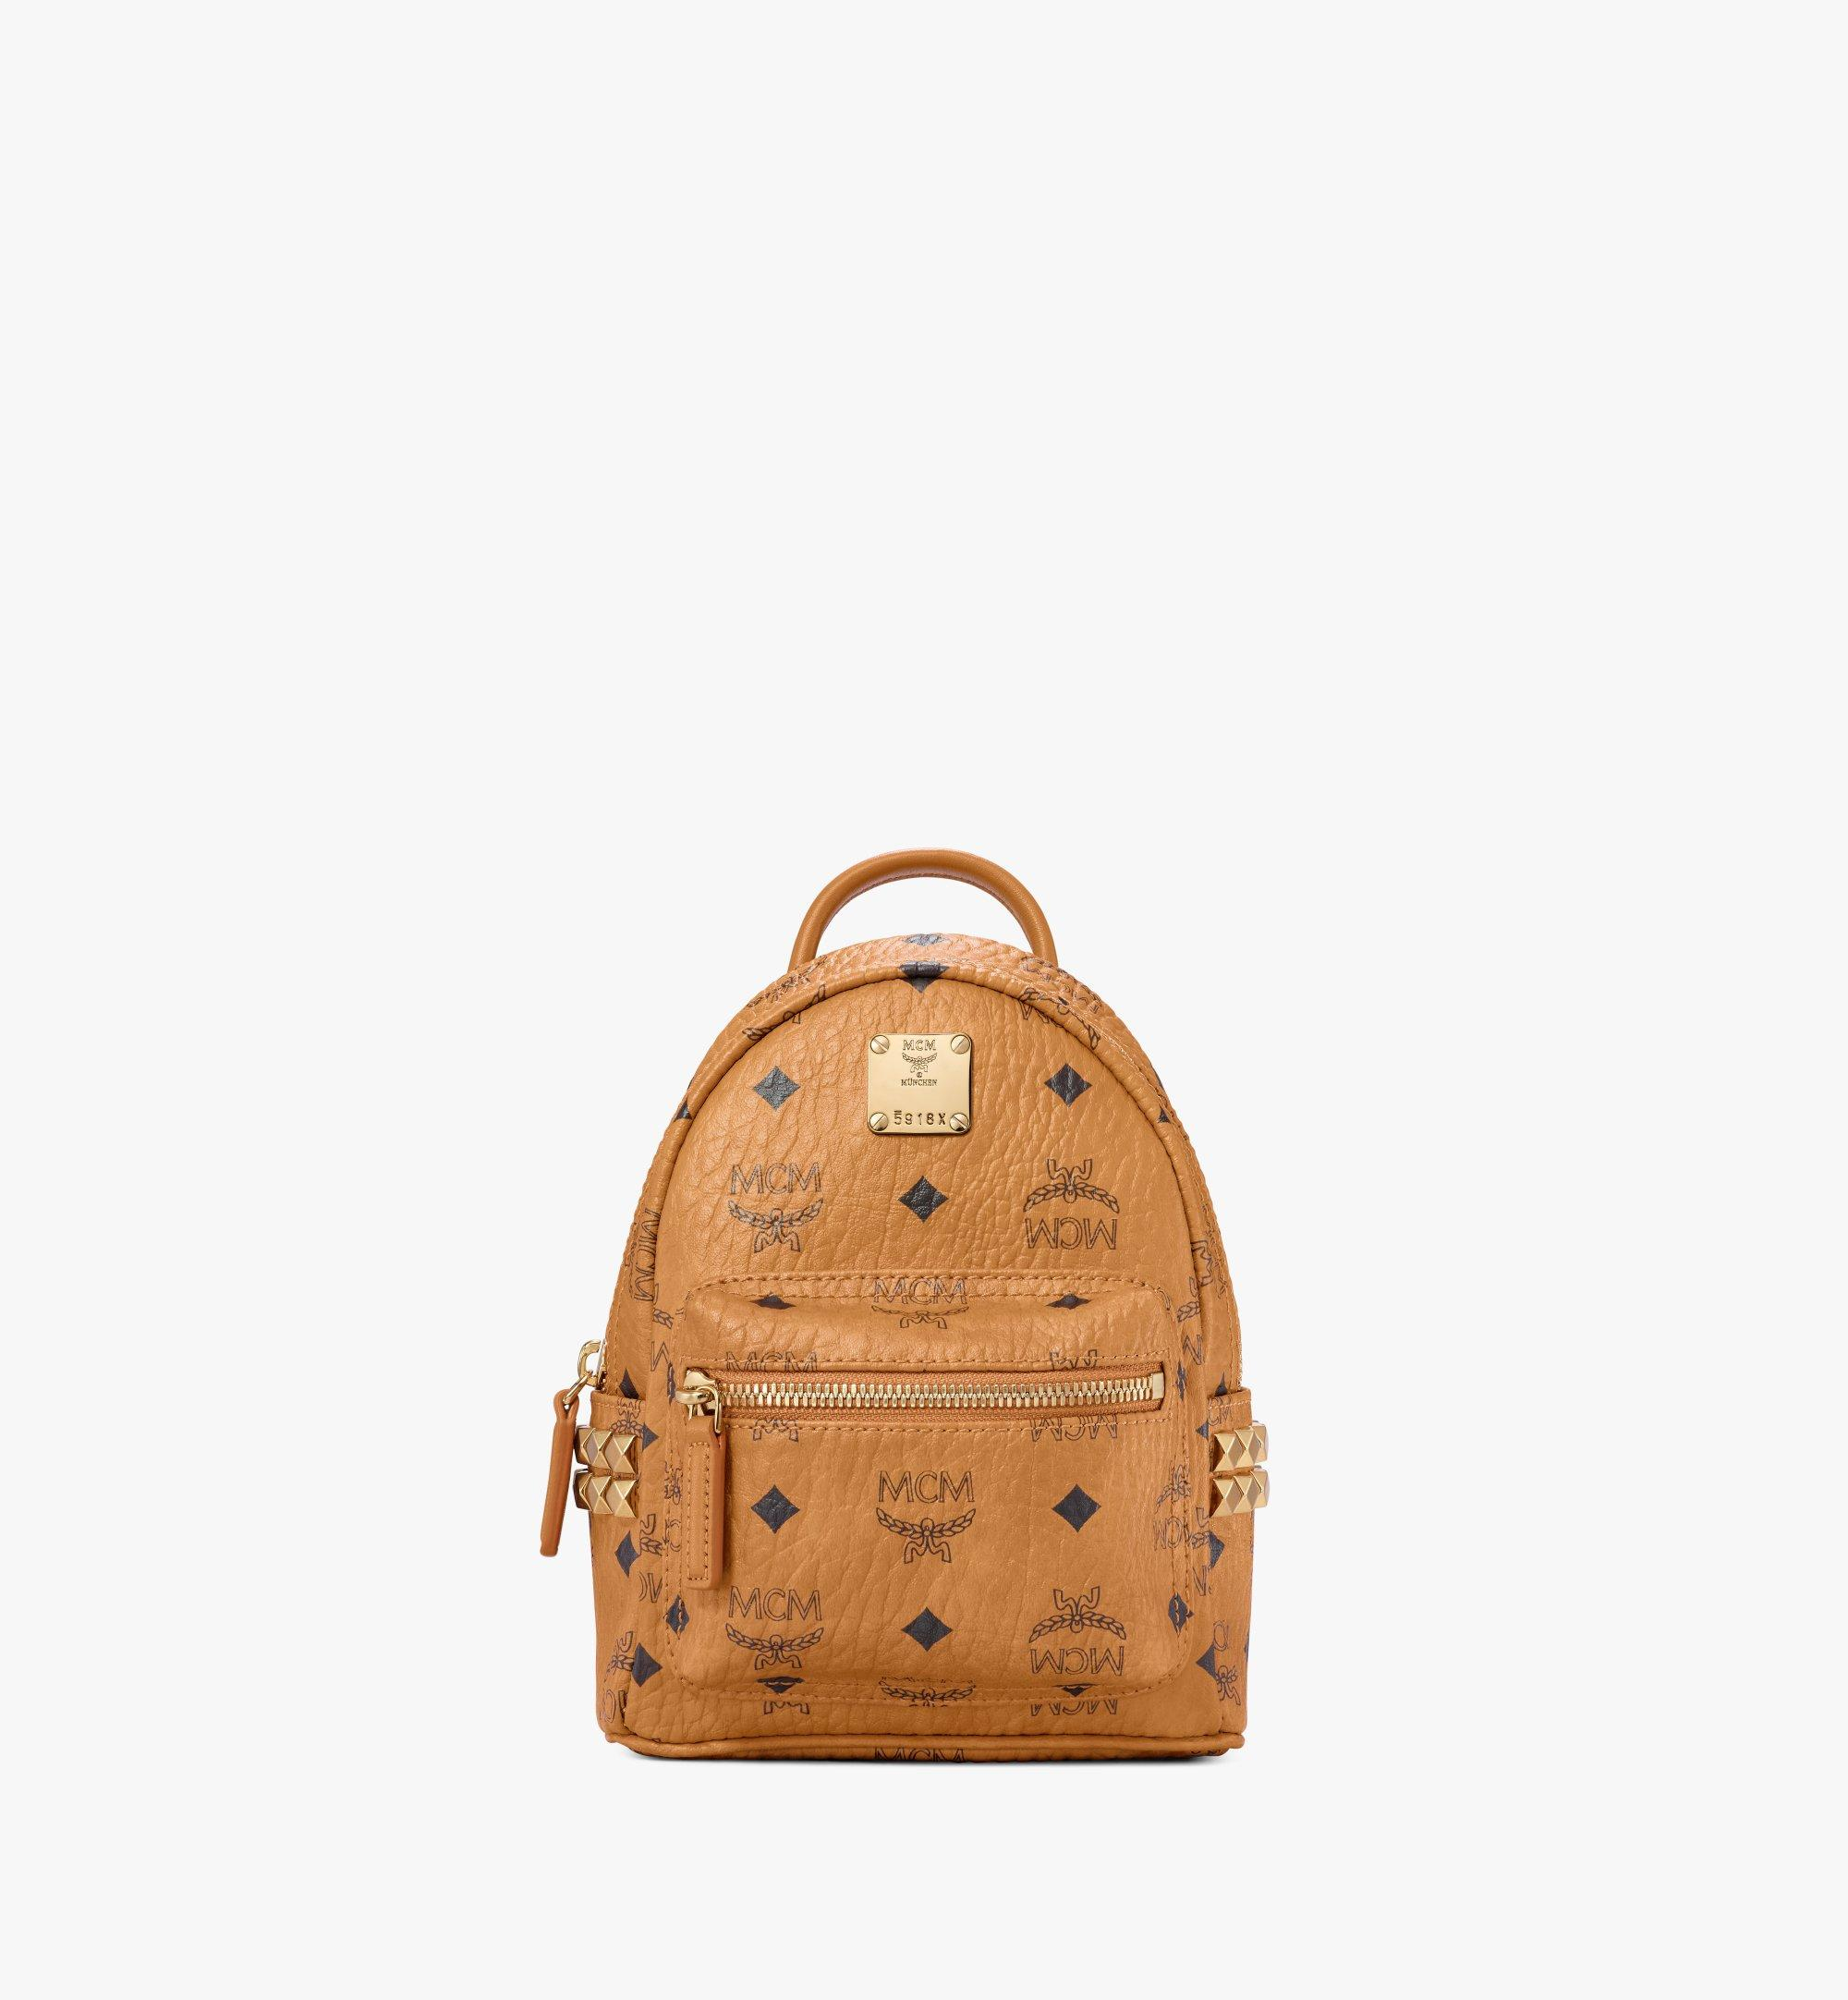 7df4ef1821c 20 cm   8 in Stark Side Studs Bebe Boo Backpack in Visetos Cognac